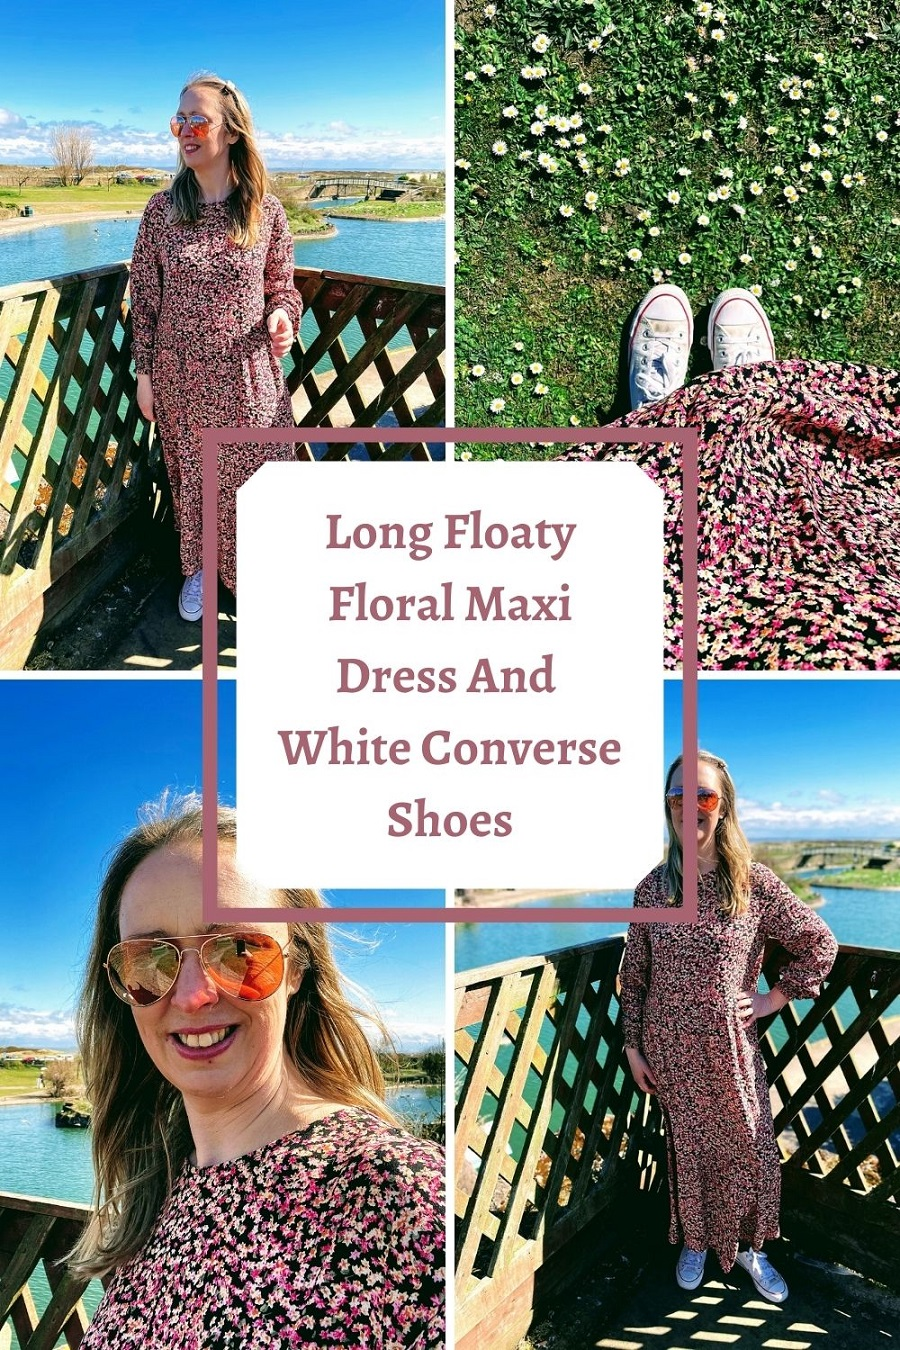 Dress And White Converse Shoes